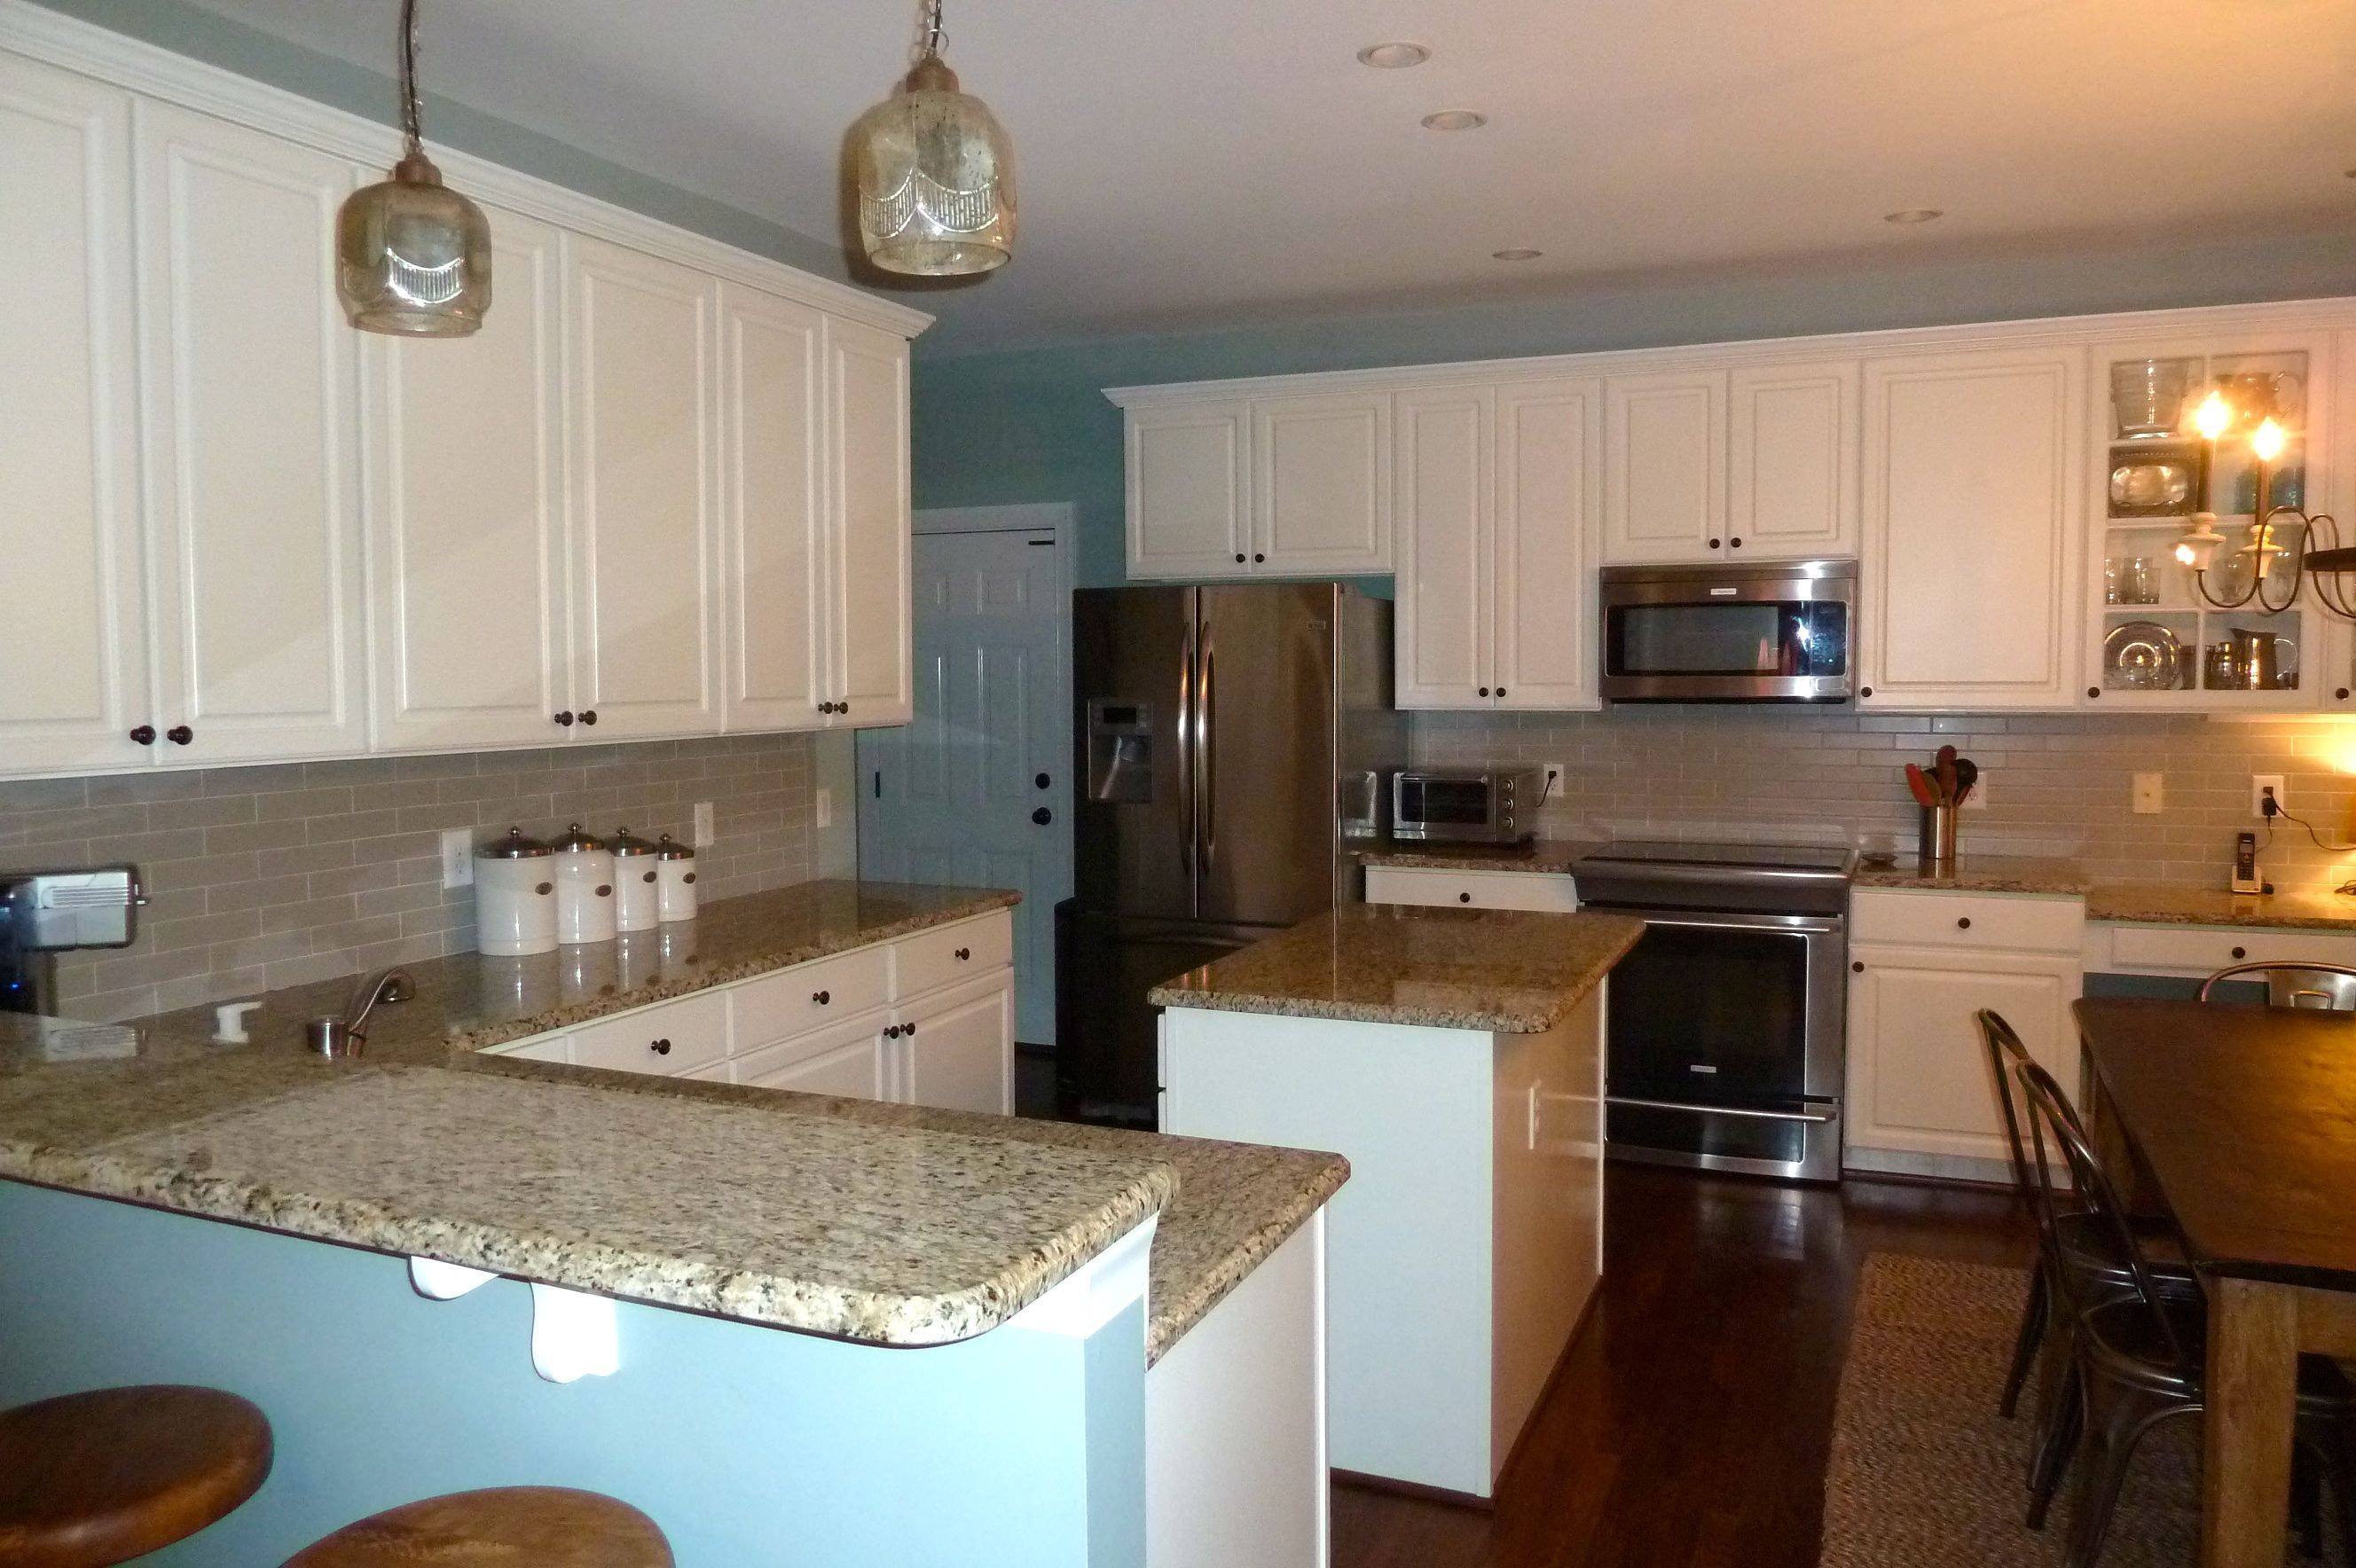 Wellsley Cary Nc Bright And Inviting Kitchen Cheap Kitchen Cabinets Kitchen Cabinet Remodel Buy Cabinets